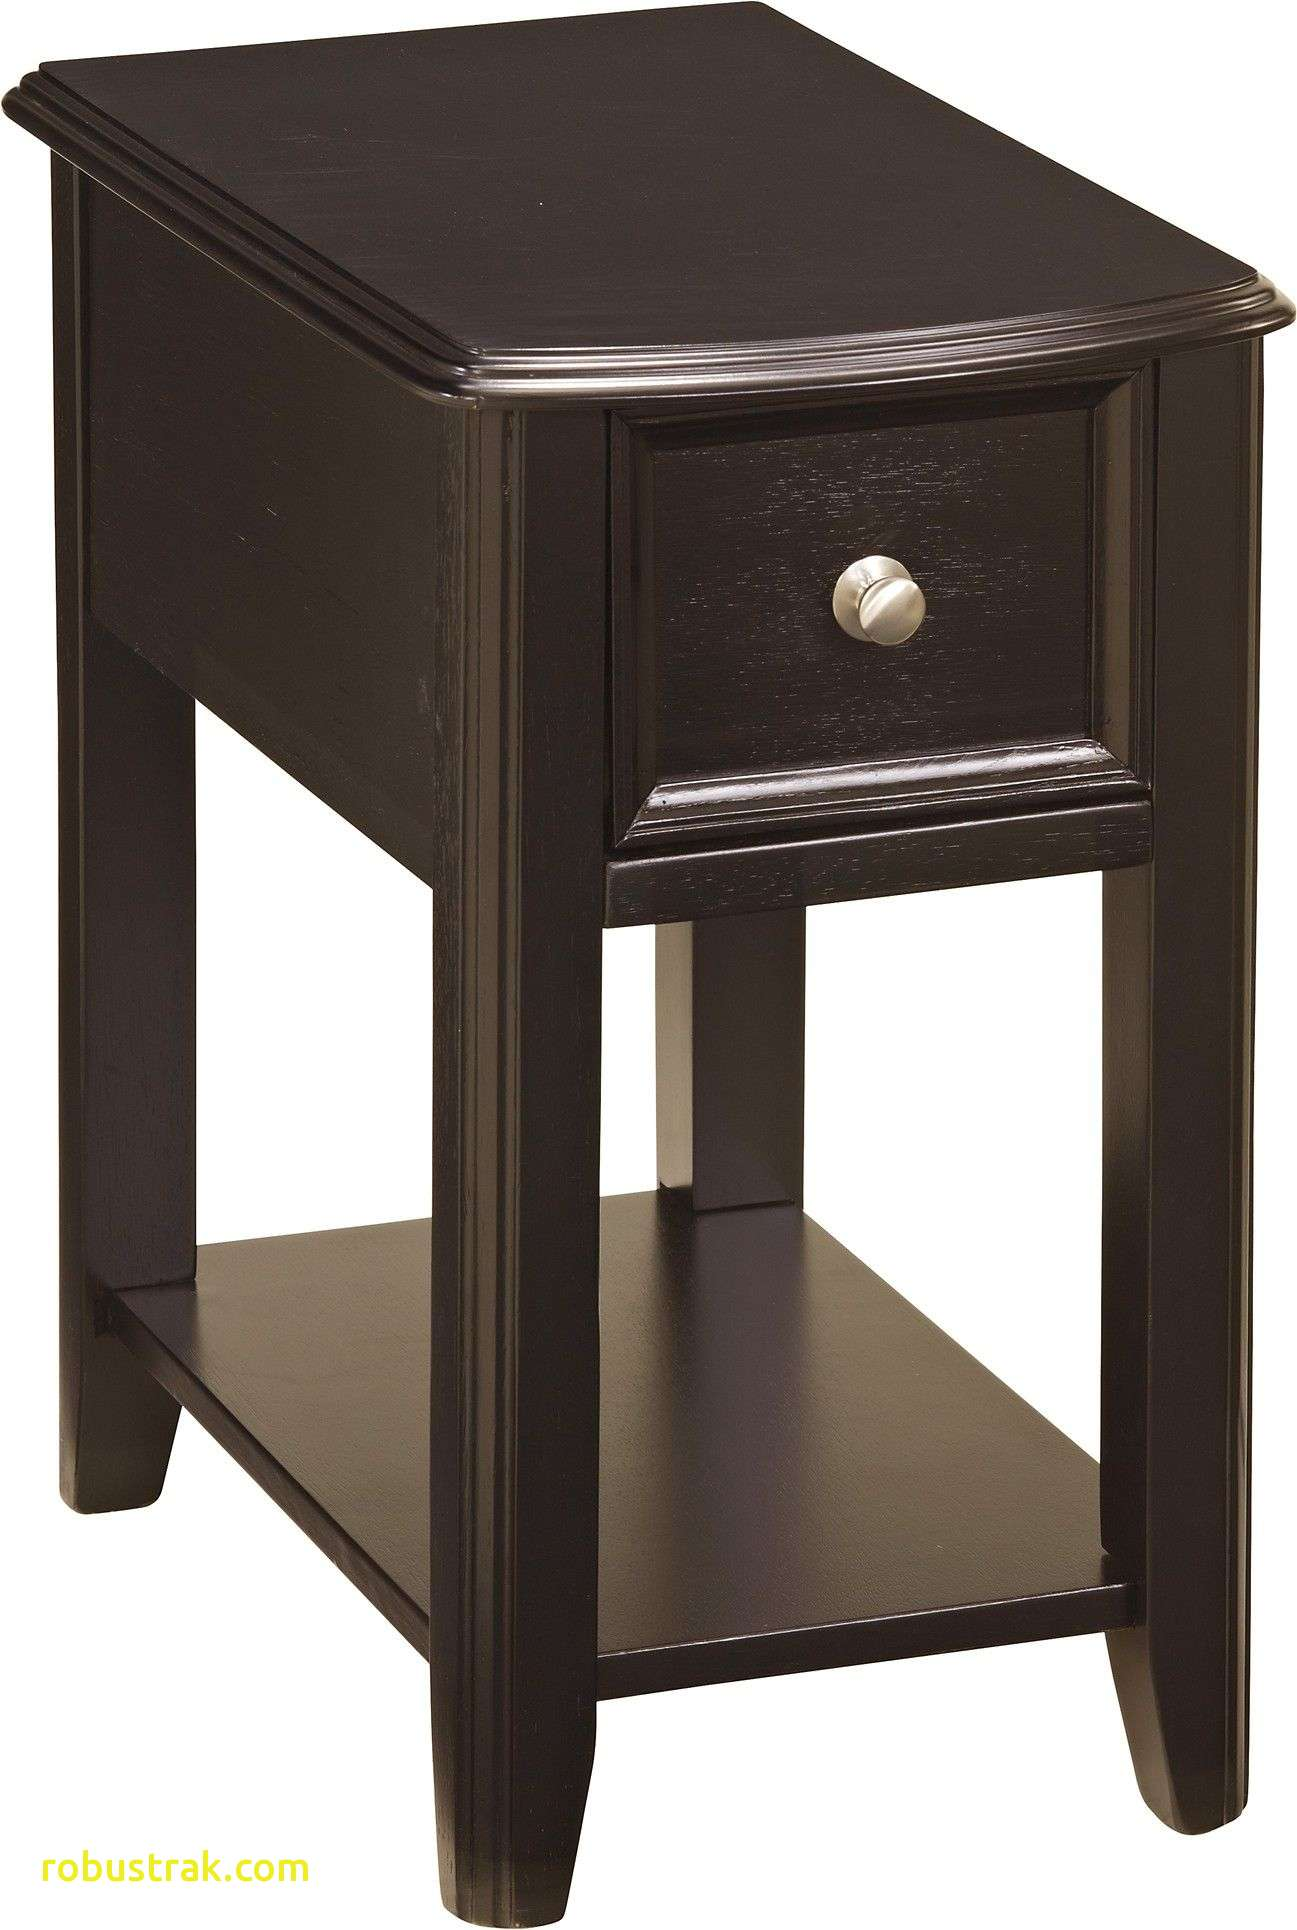 luxury black night stand home design ideas awesome ashley breegin signature chair side end table this timmy accent chairside memory foam rug patio and covers rectangular dog wash